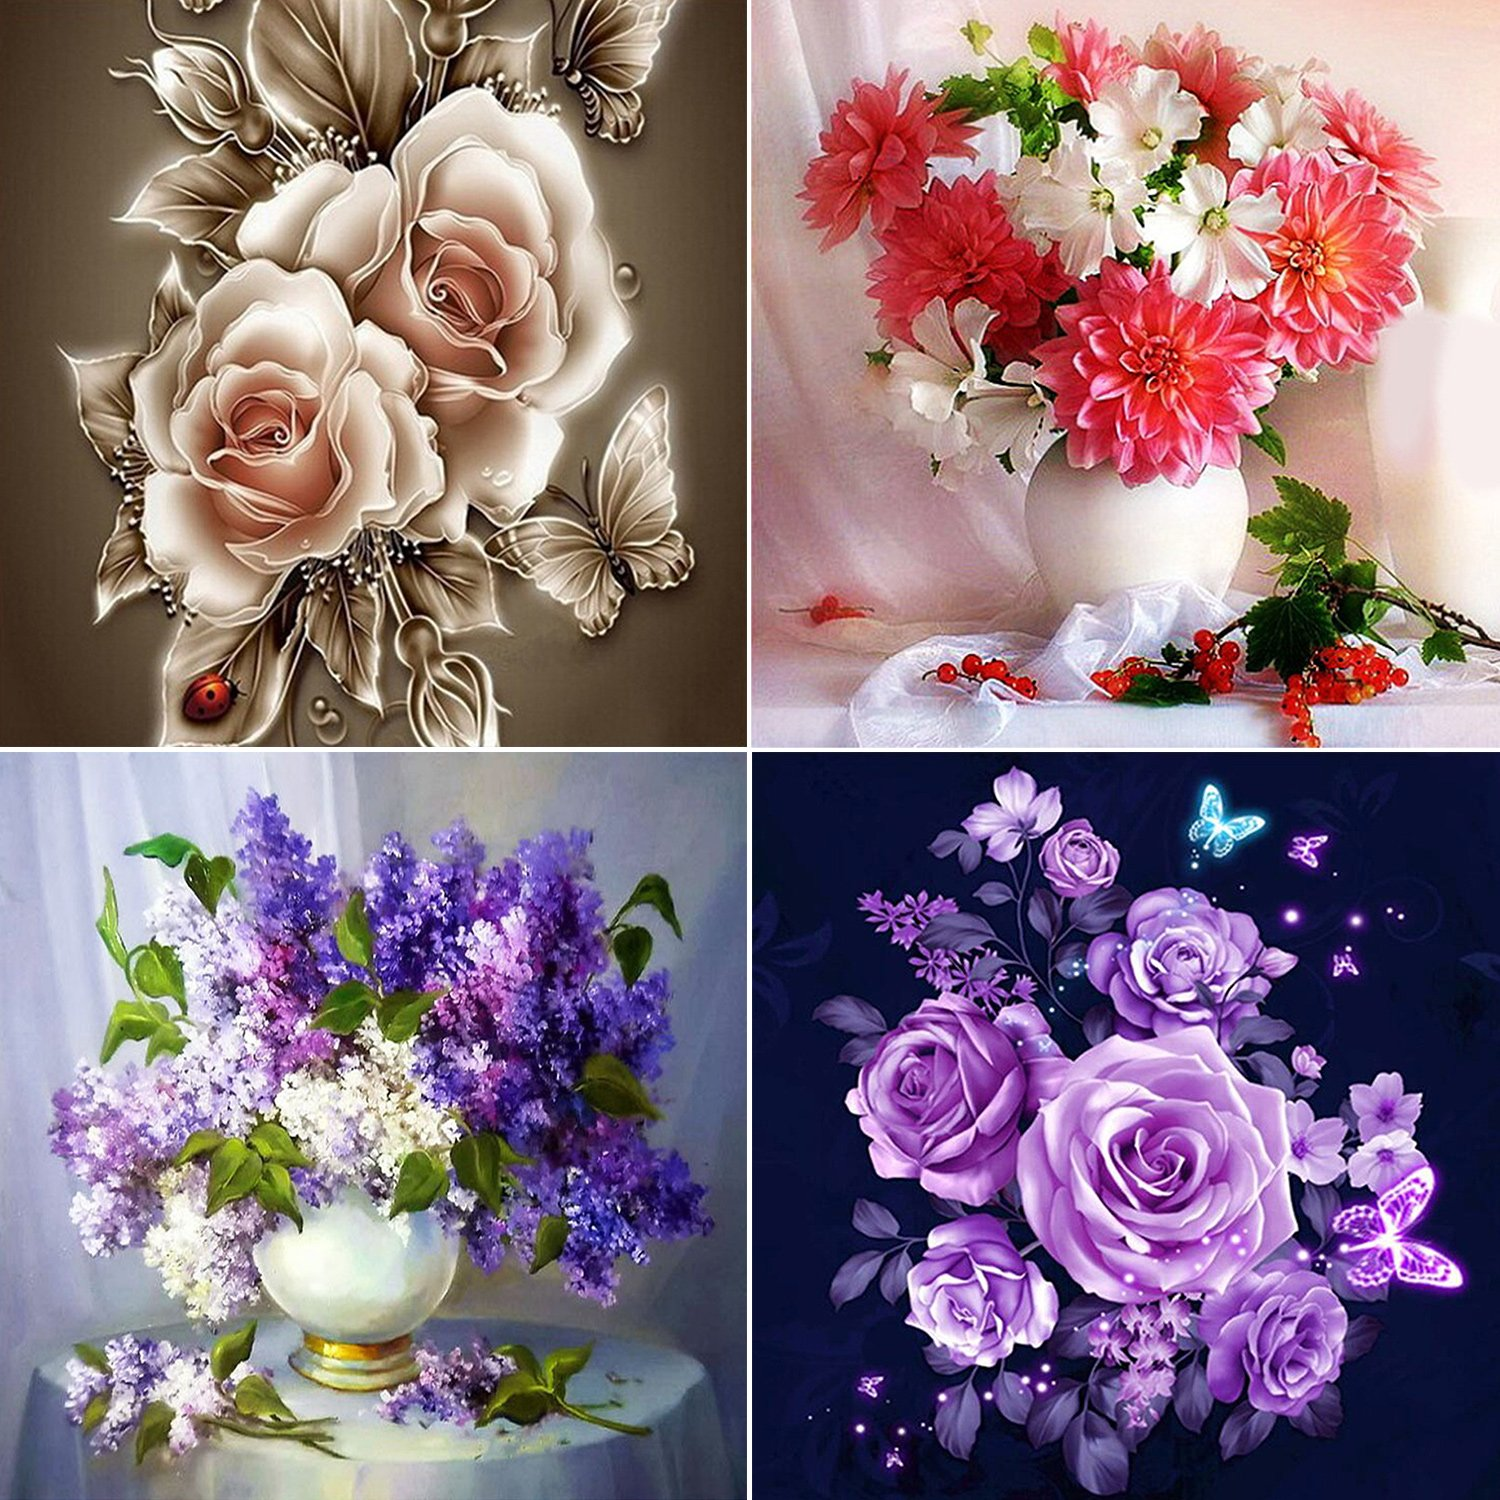 Aneco 4 Pack 5D Full Drill DIY Diamond Painting Kit Flowers Rhinestone Painting Embroidery for Art Craft DIY Home Decoration